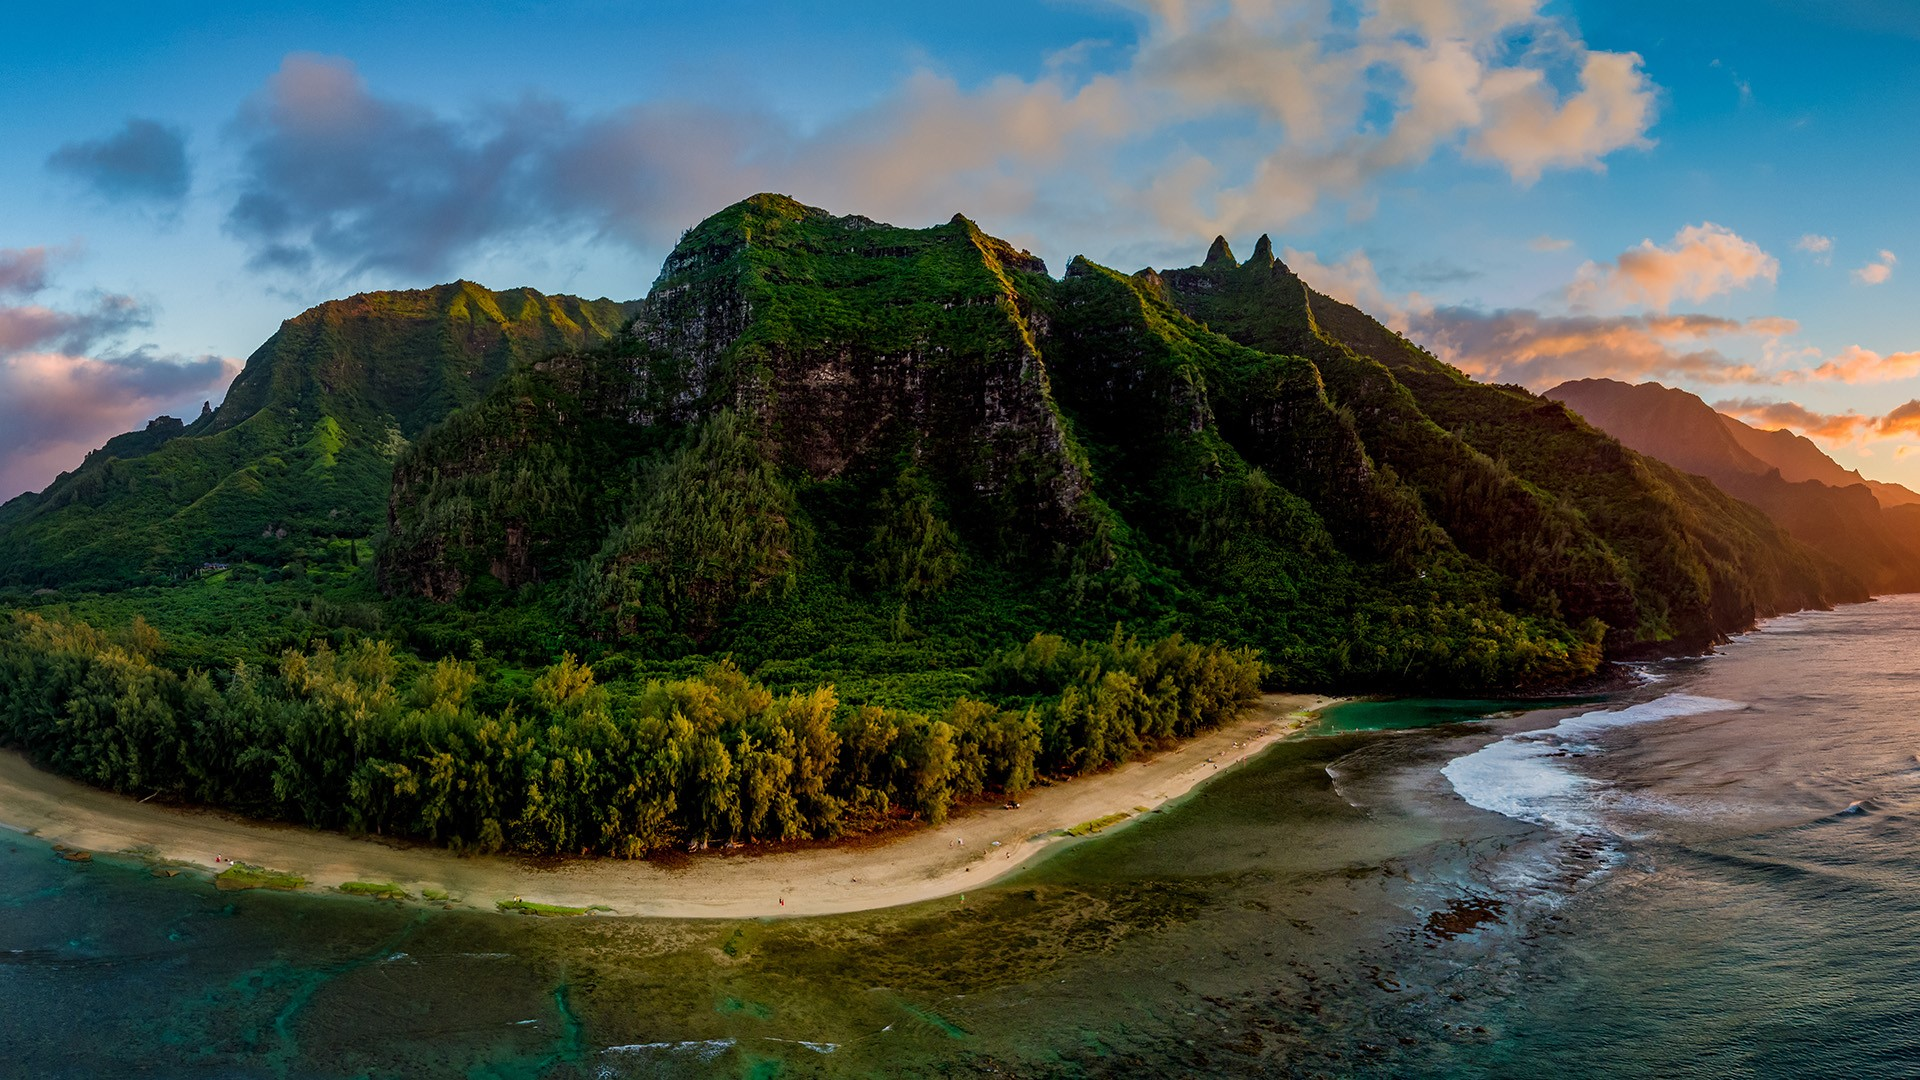 Aerial View Of Nā Pali Coast At Sunset